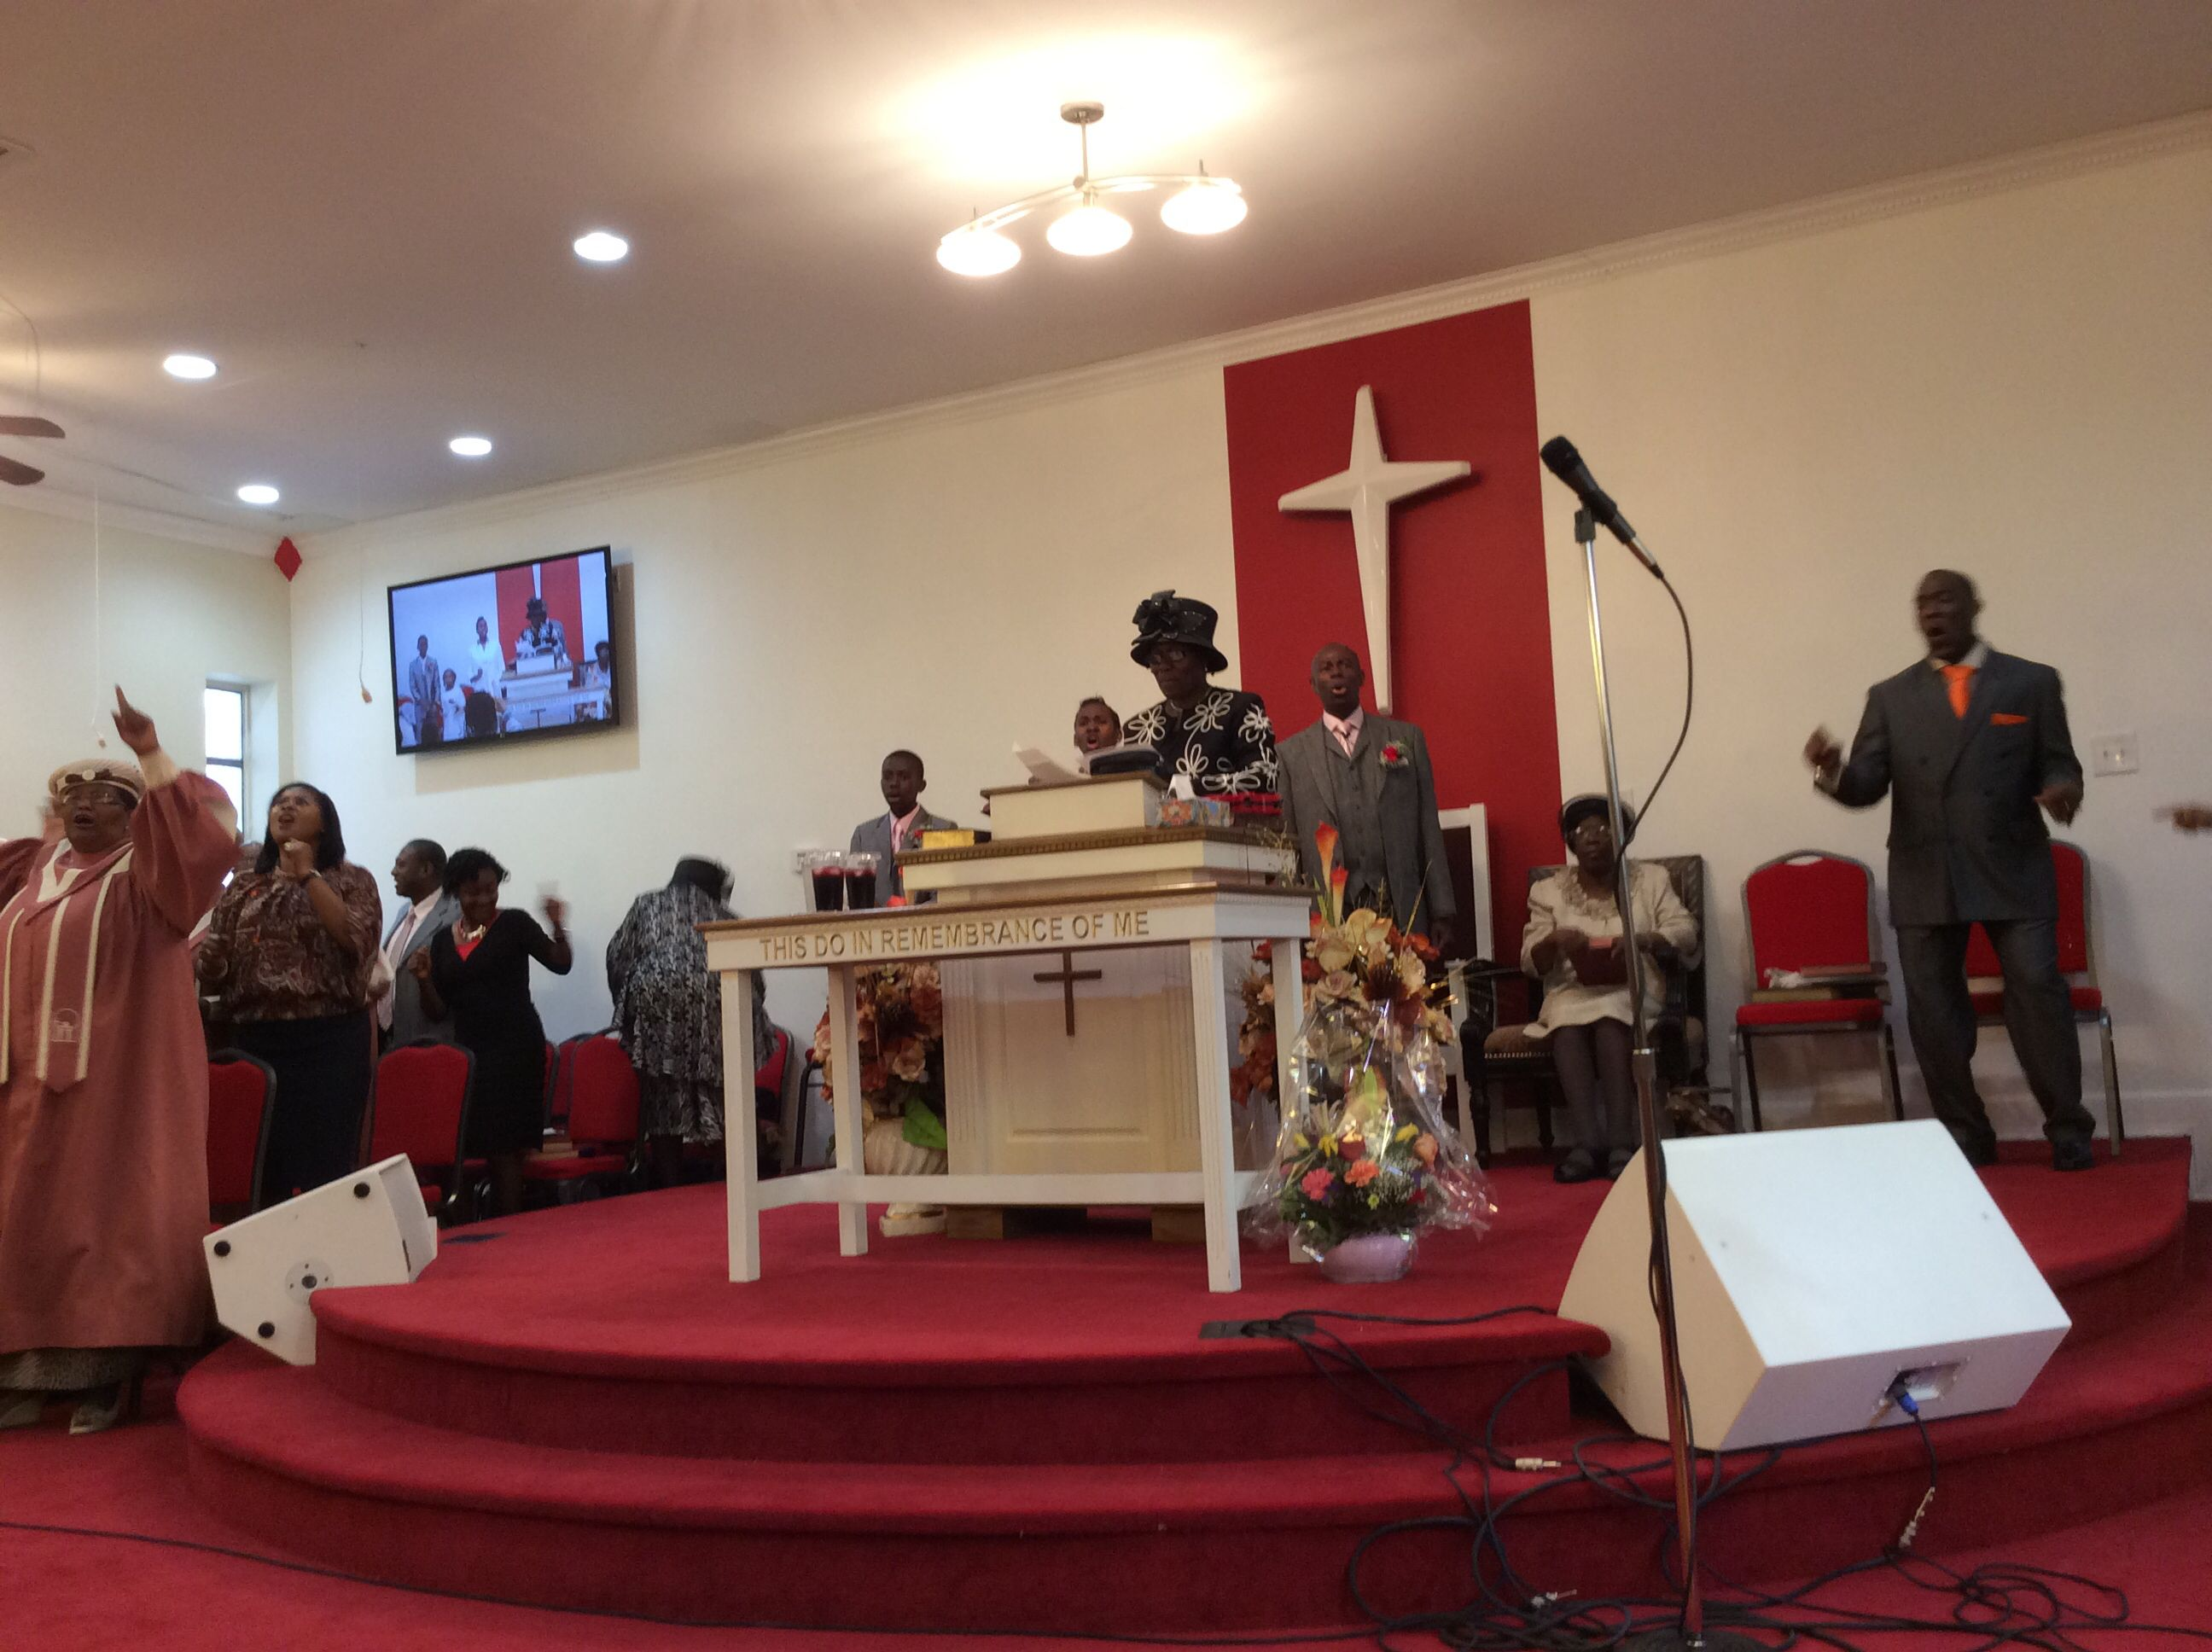 Everyone worshipping the LORD JESUS CHRIST